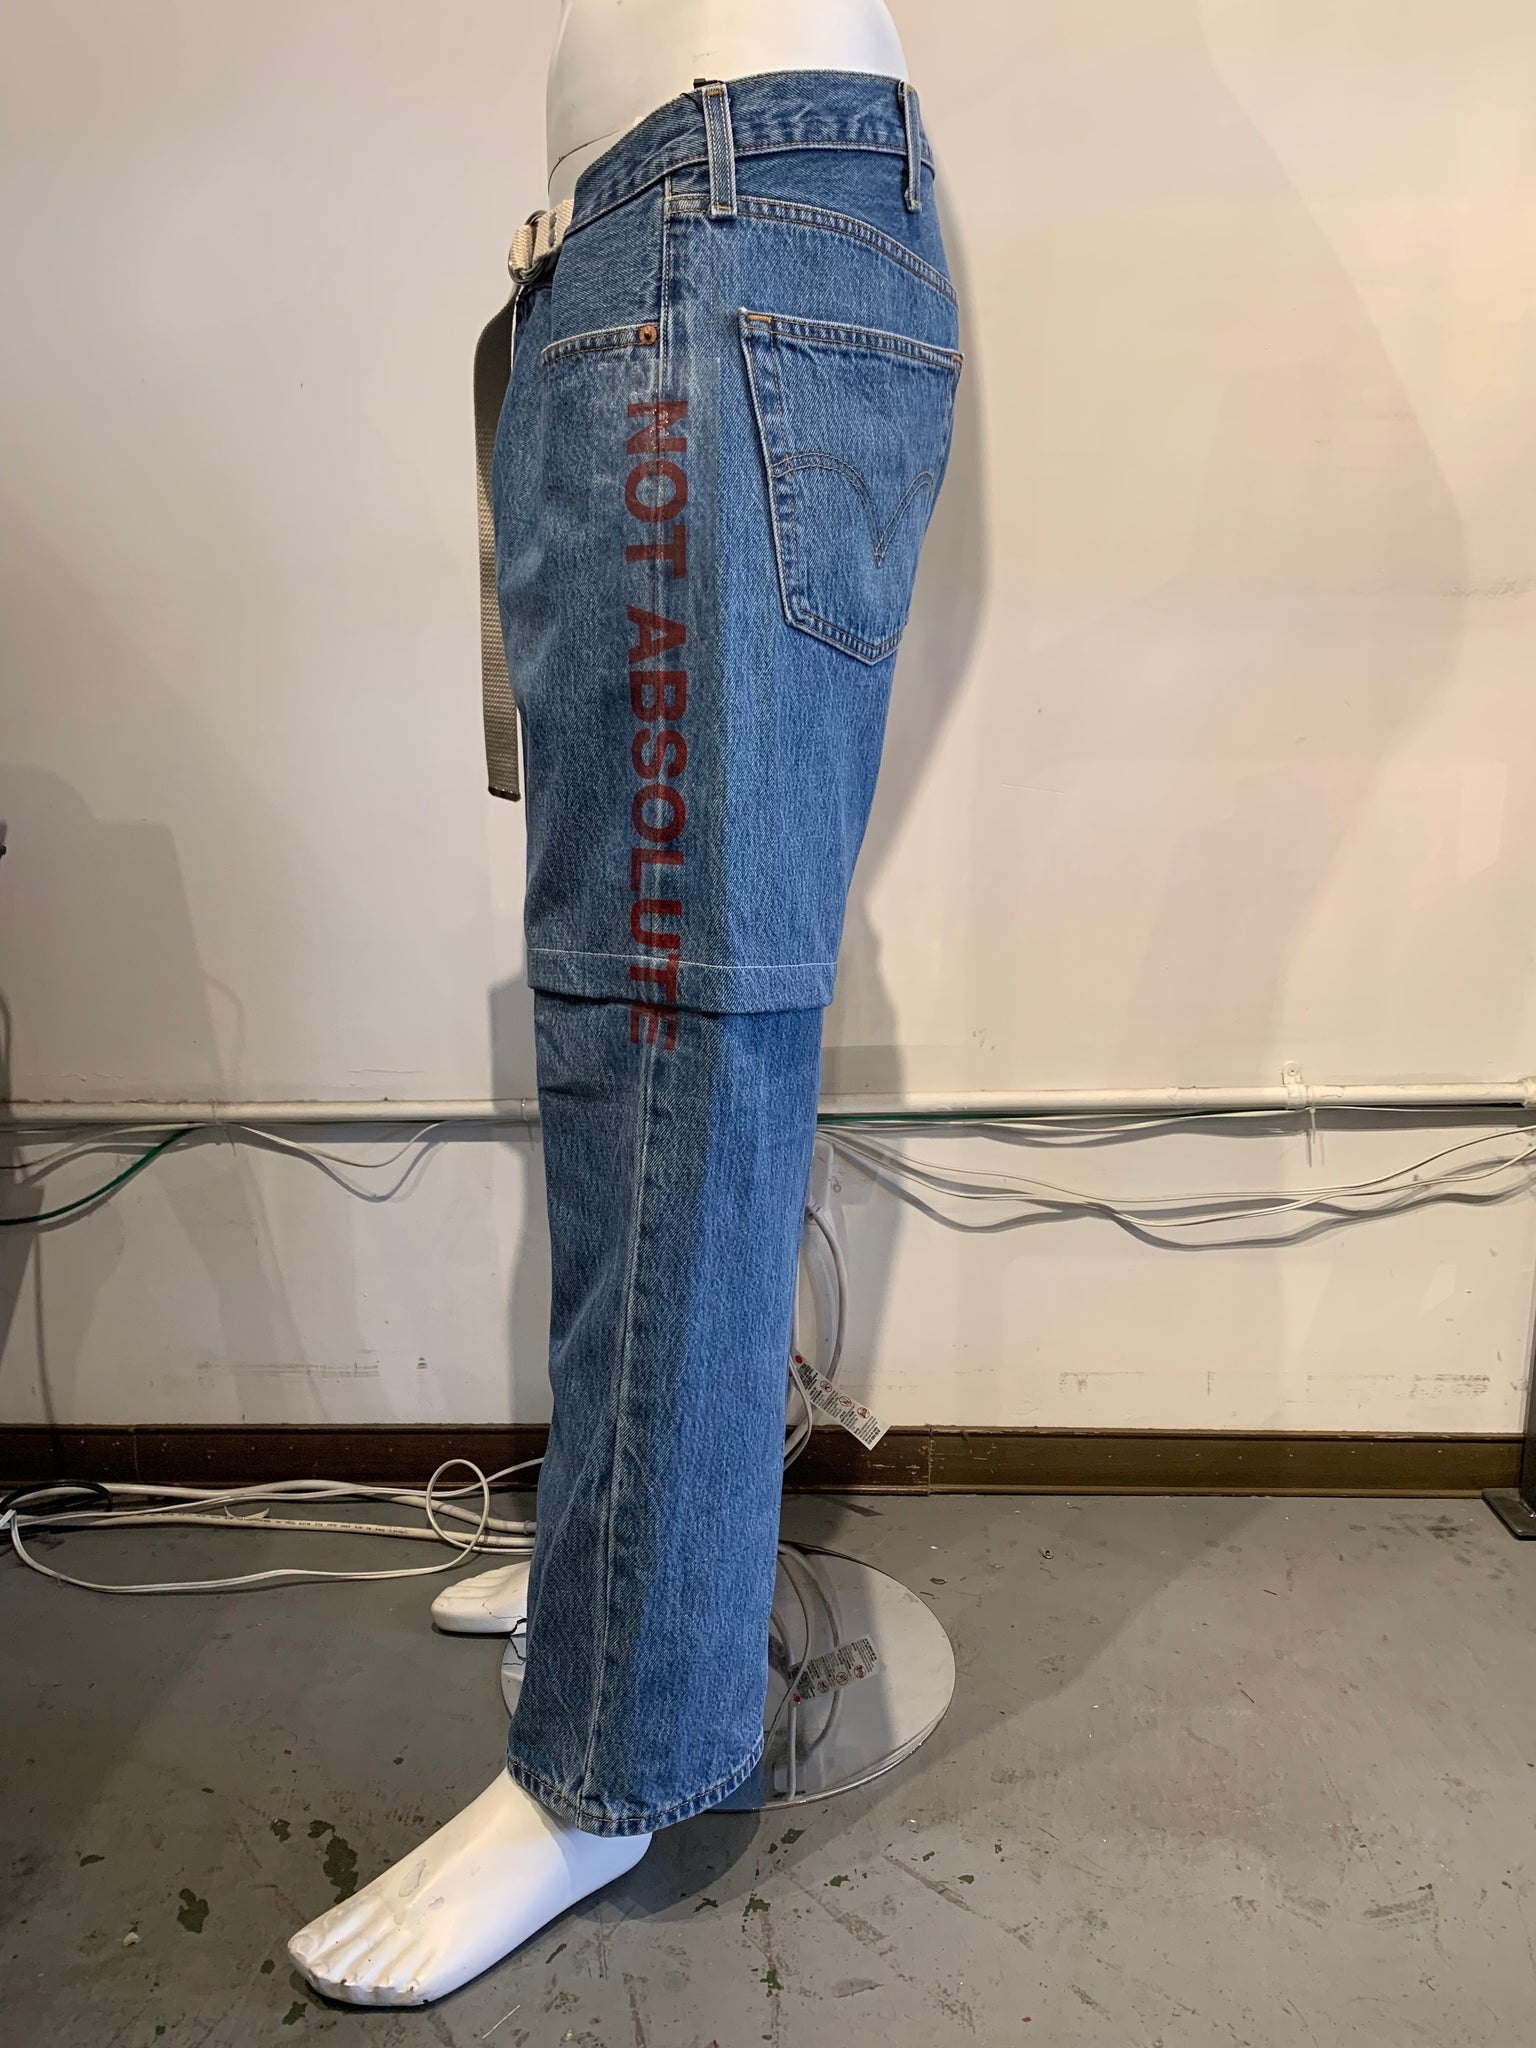 Remake Levi's adjustable jeans